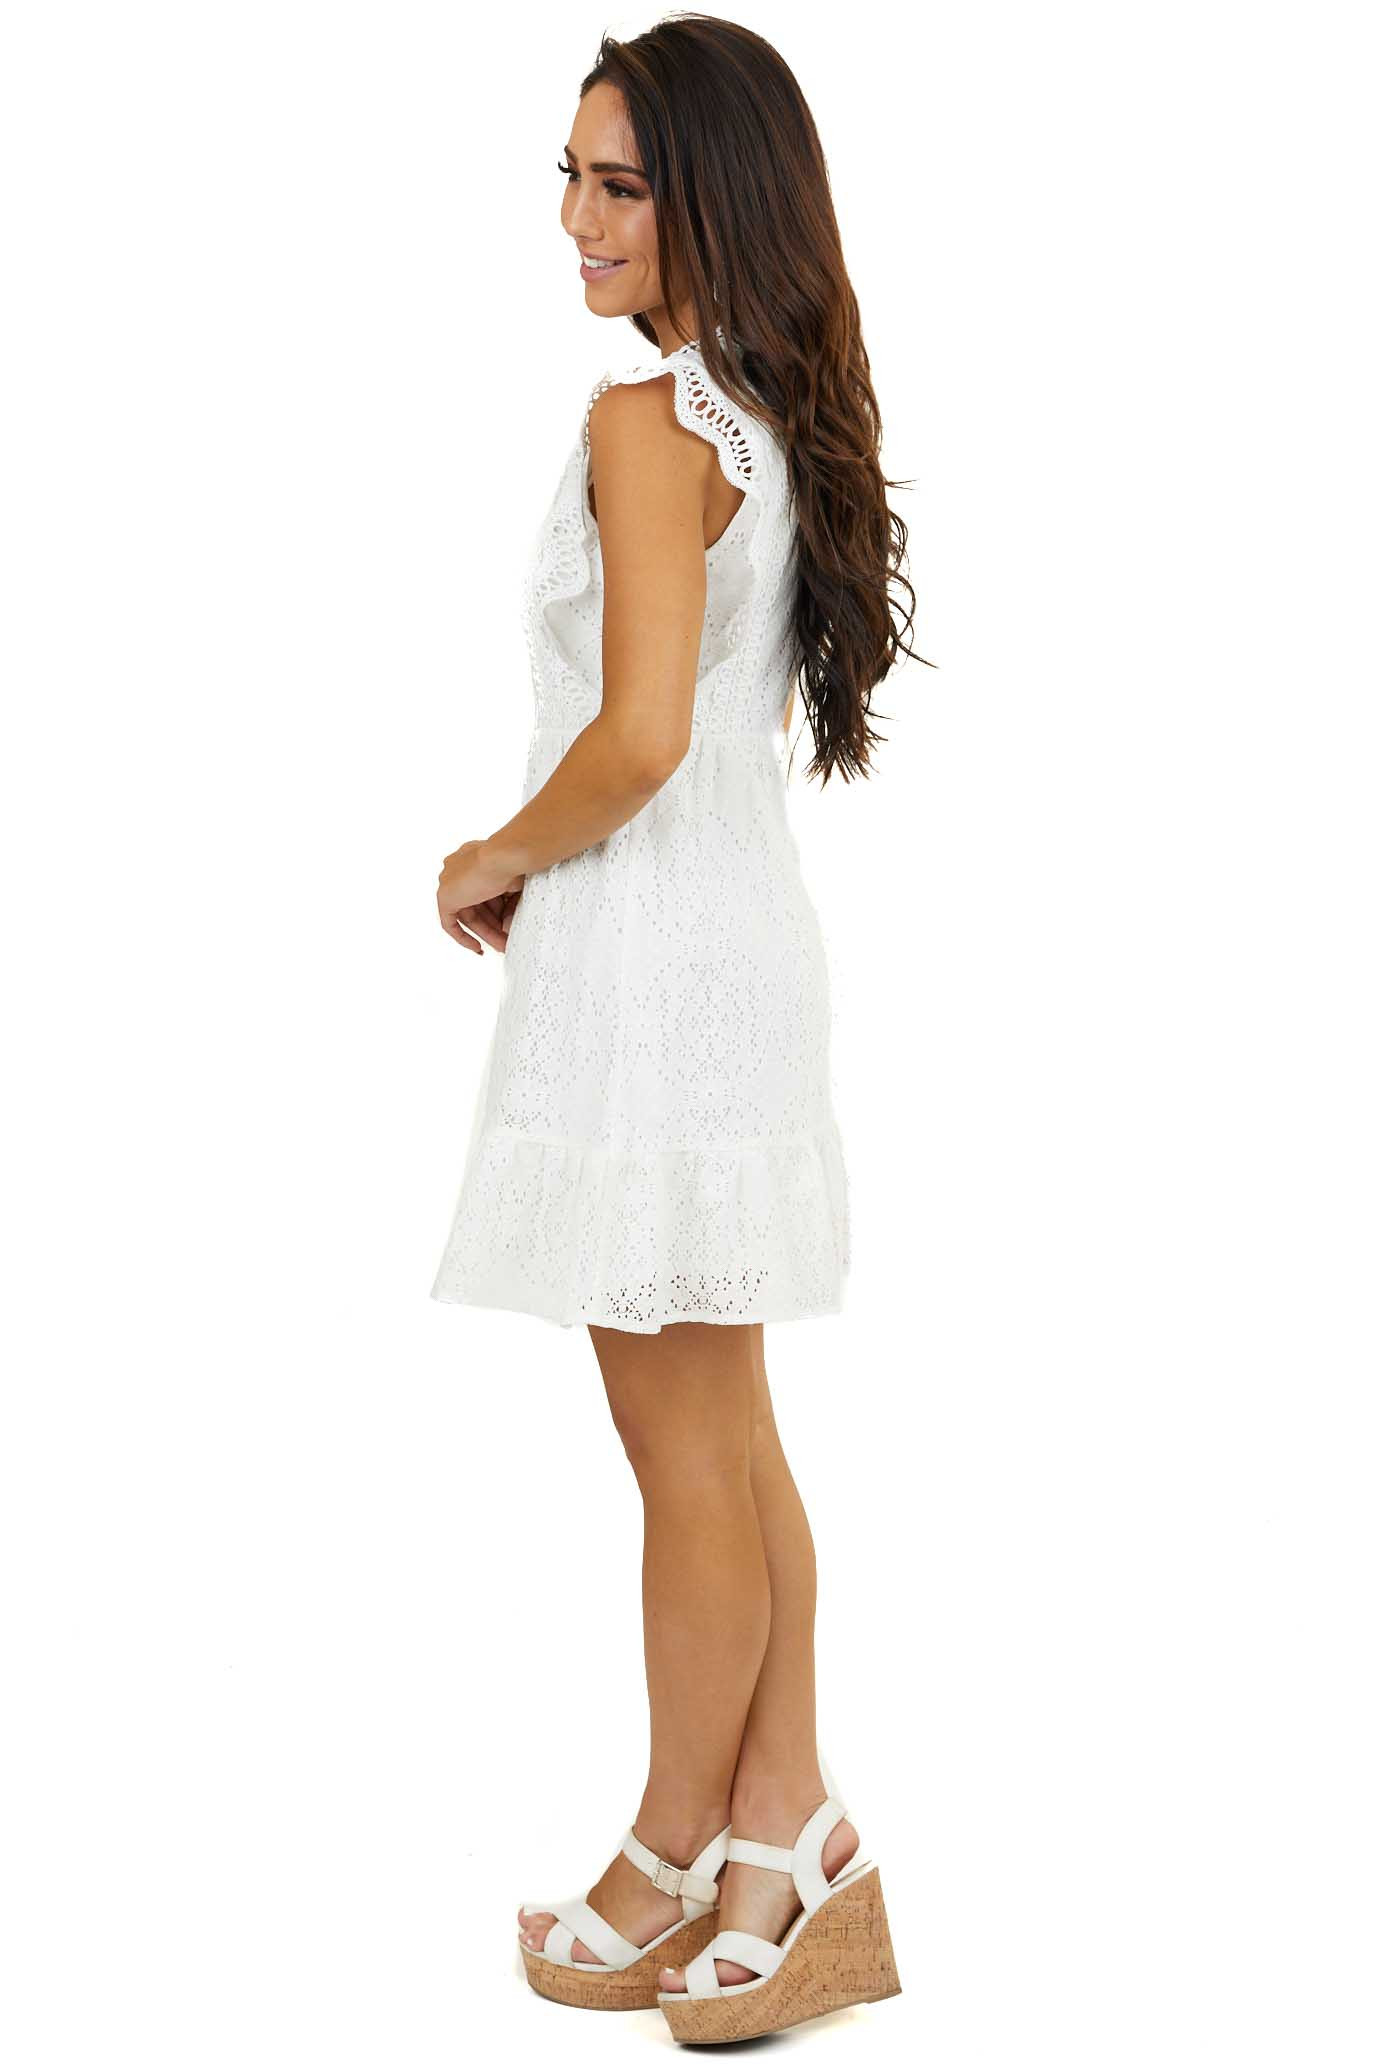 Ivory Eyelet Lace High Neck Dress with Crochet Lace Details